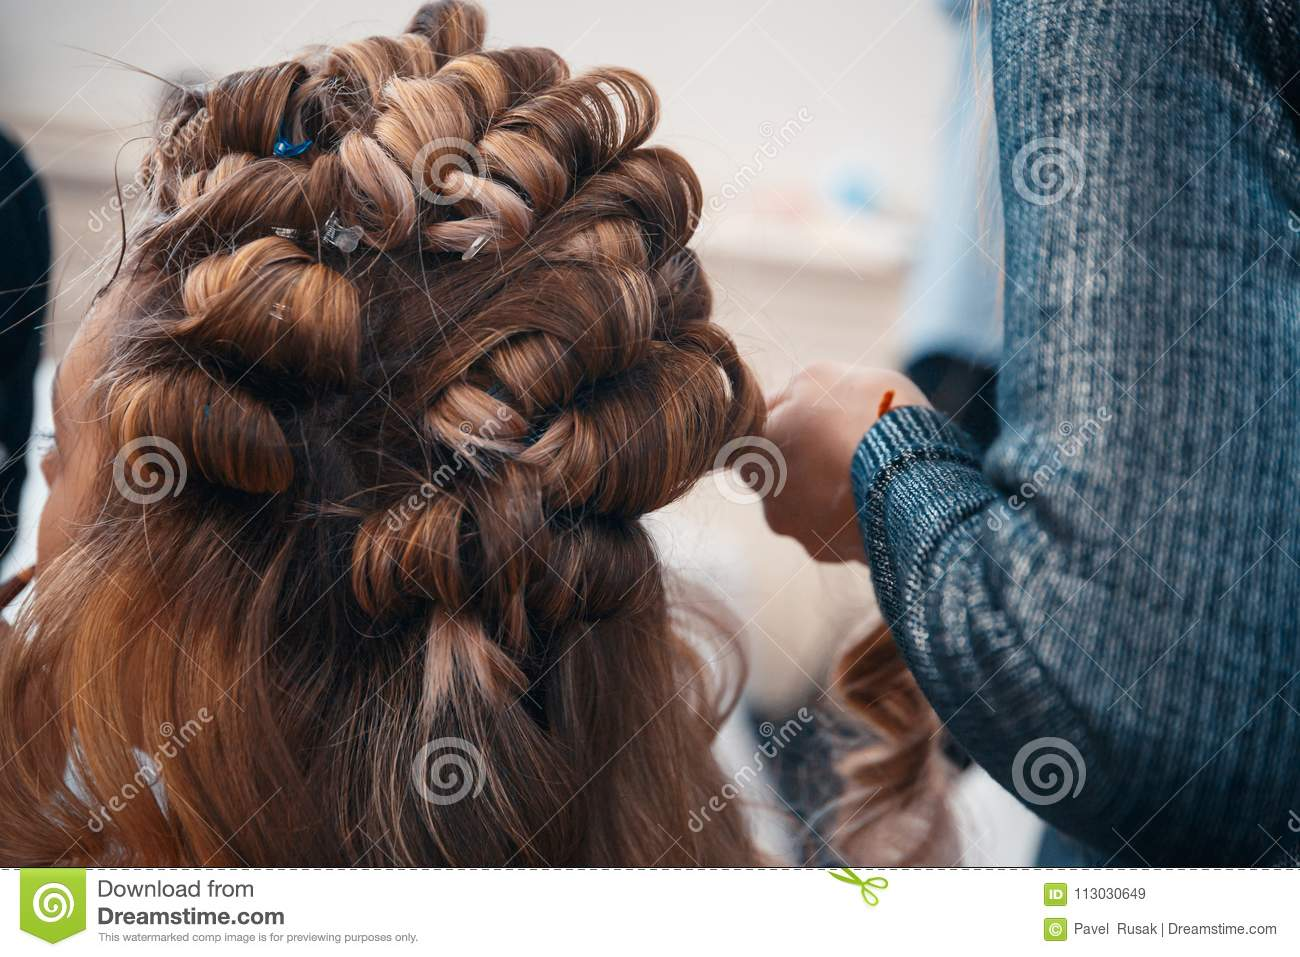 The Hairdresser Does Hair Extensions To A Young Girl Stock Image